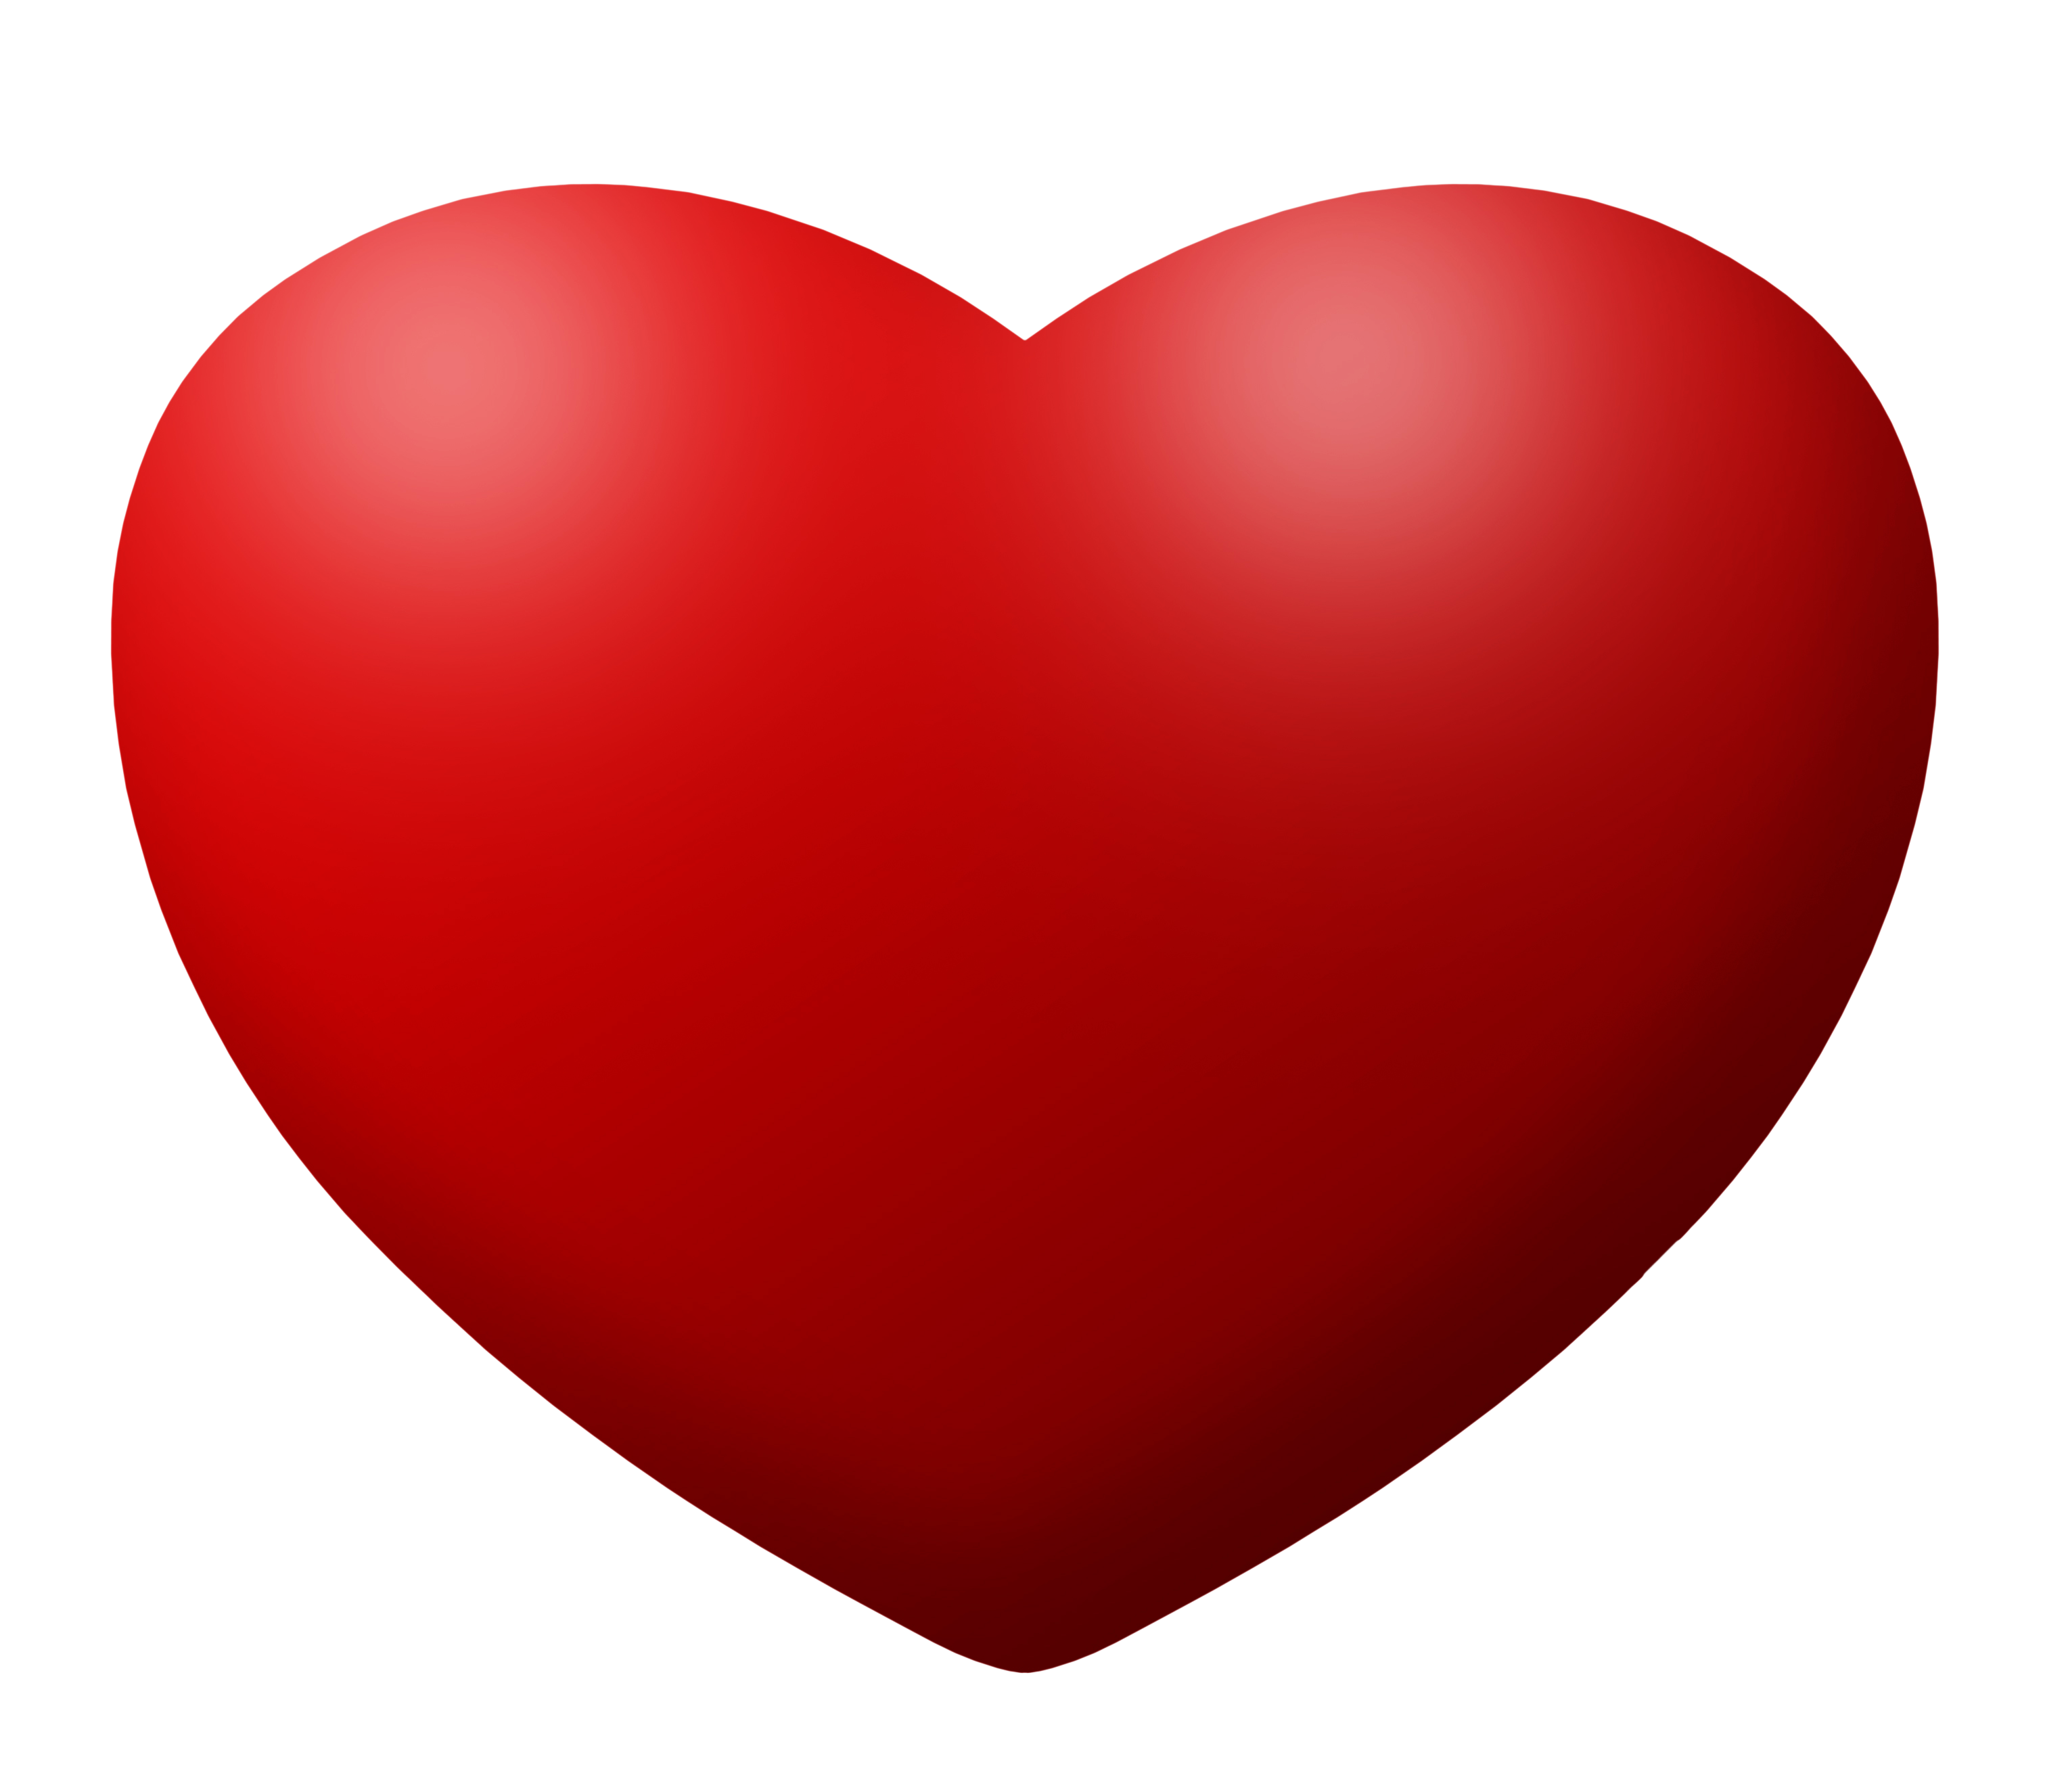 Free . Heart png images